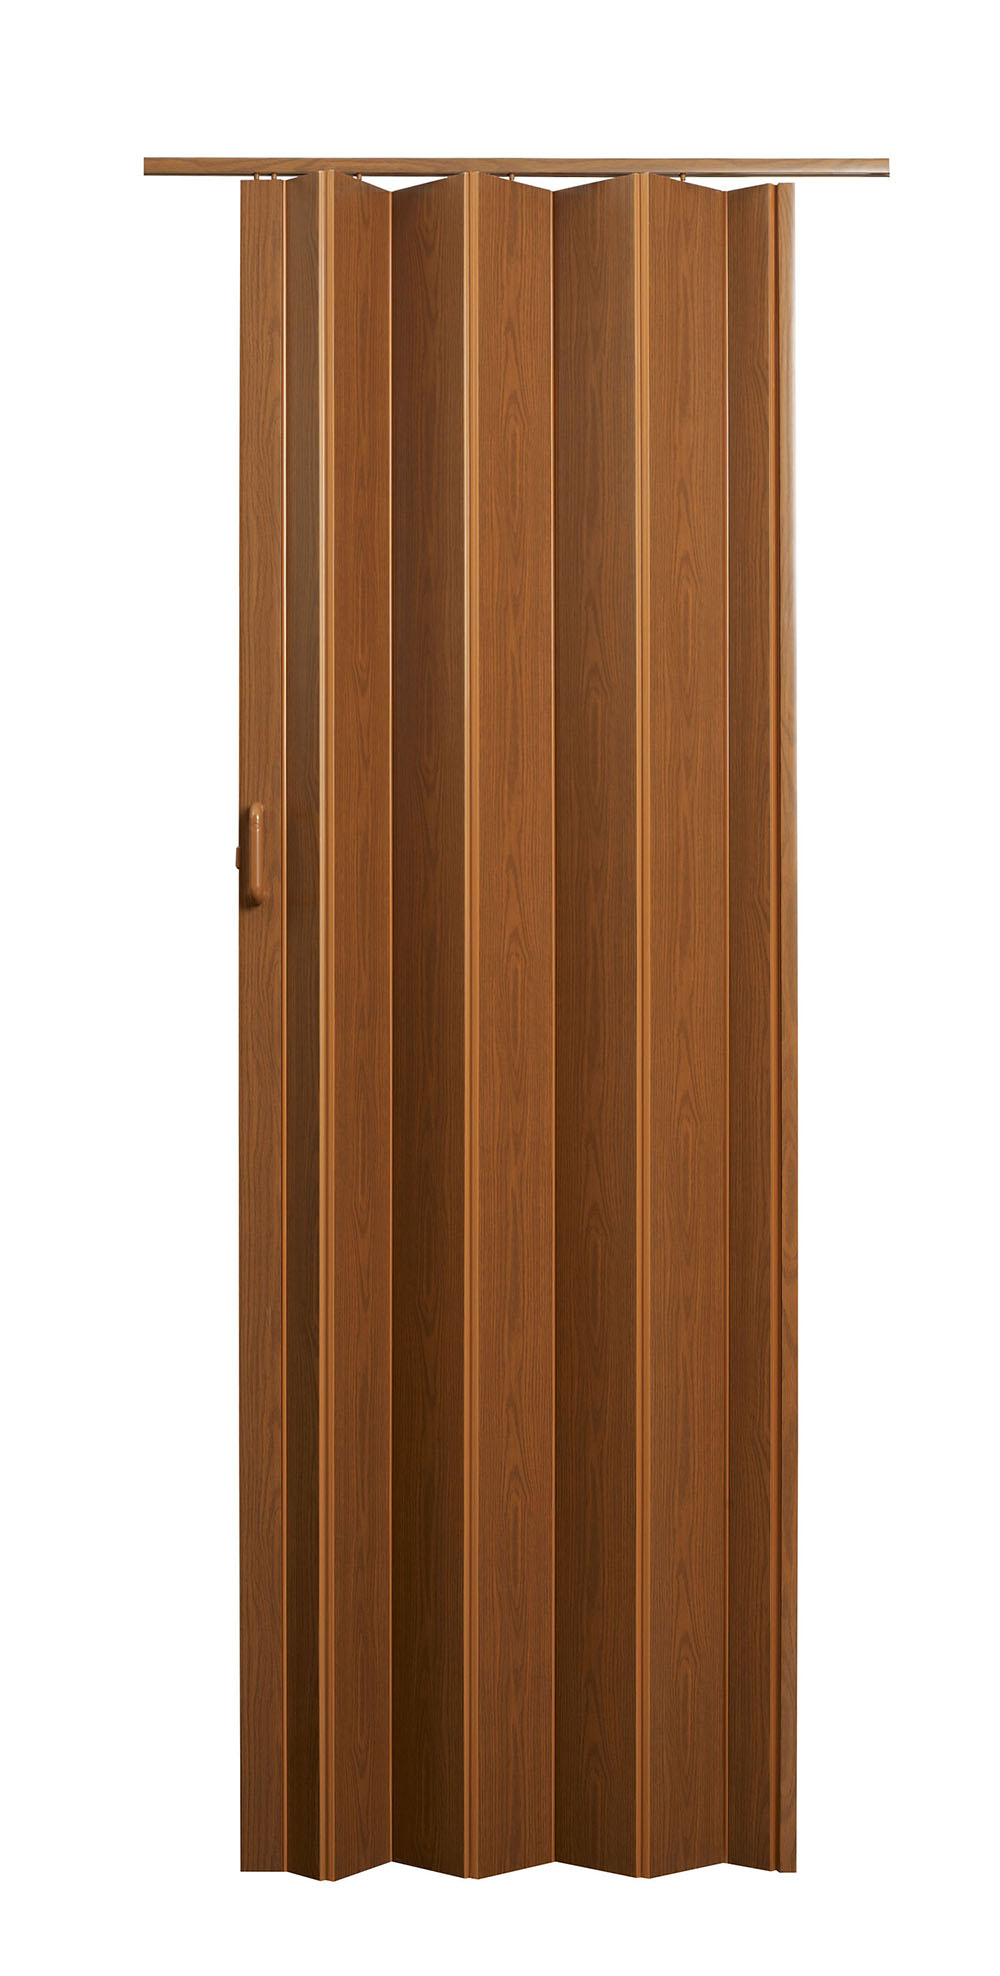 Encore_Vienna_Fruitwood_Folding_Door_silo-1000